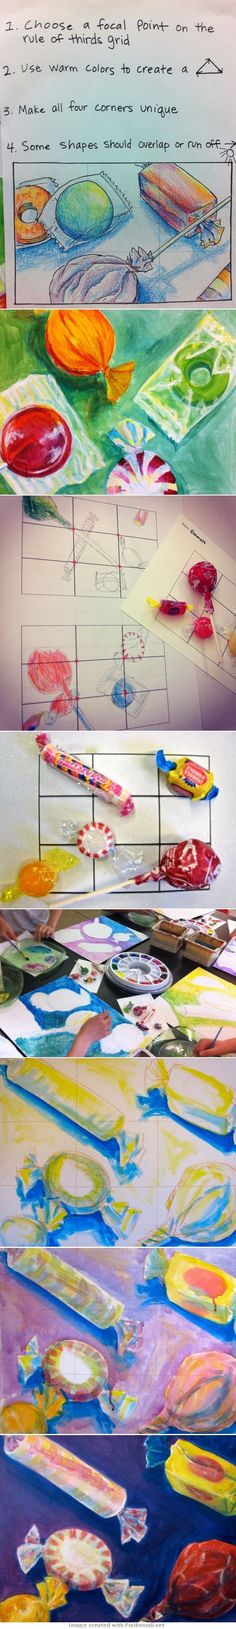 Wayne Thiebaud Candy Compositions Concepts: Composition, Acrylic Painting, Color Theory - created via http://pinthemall.net #artsketches